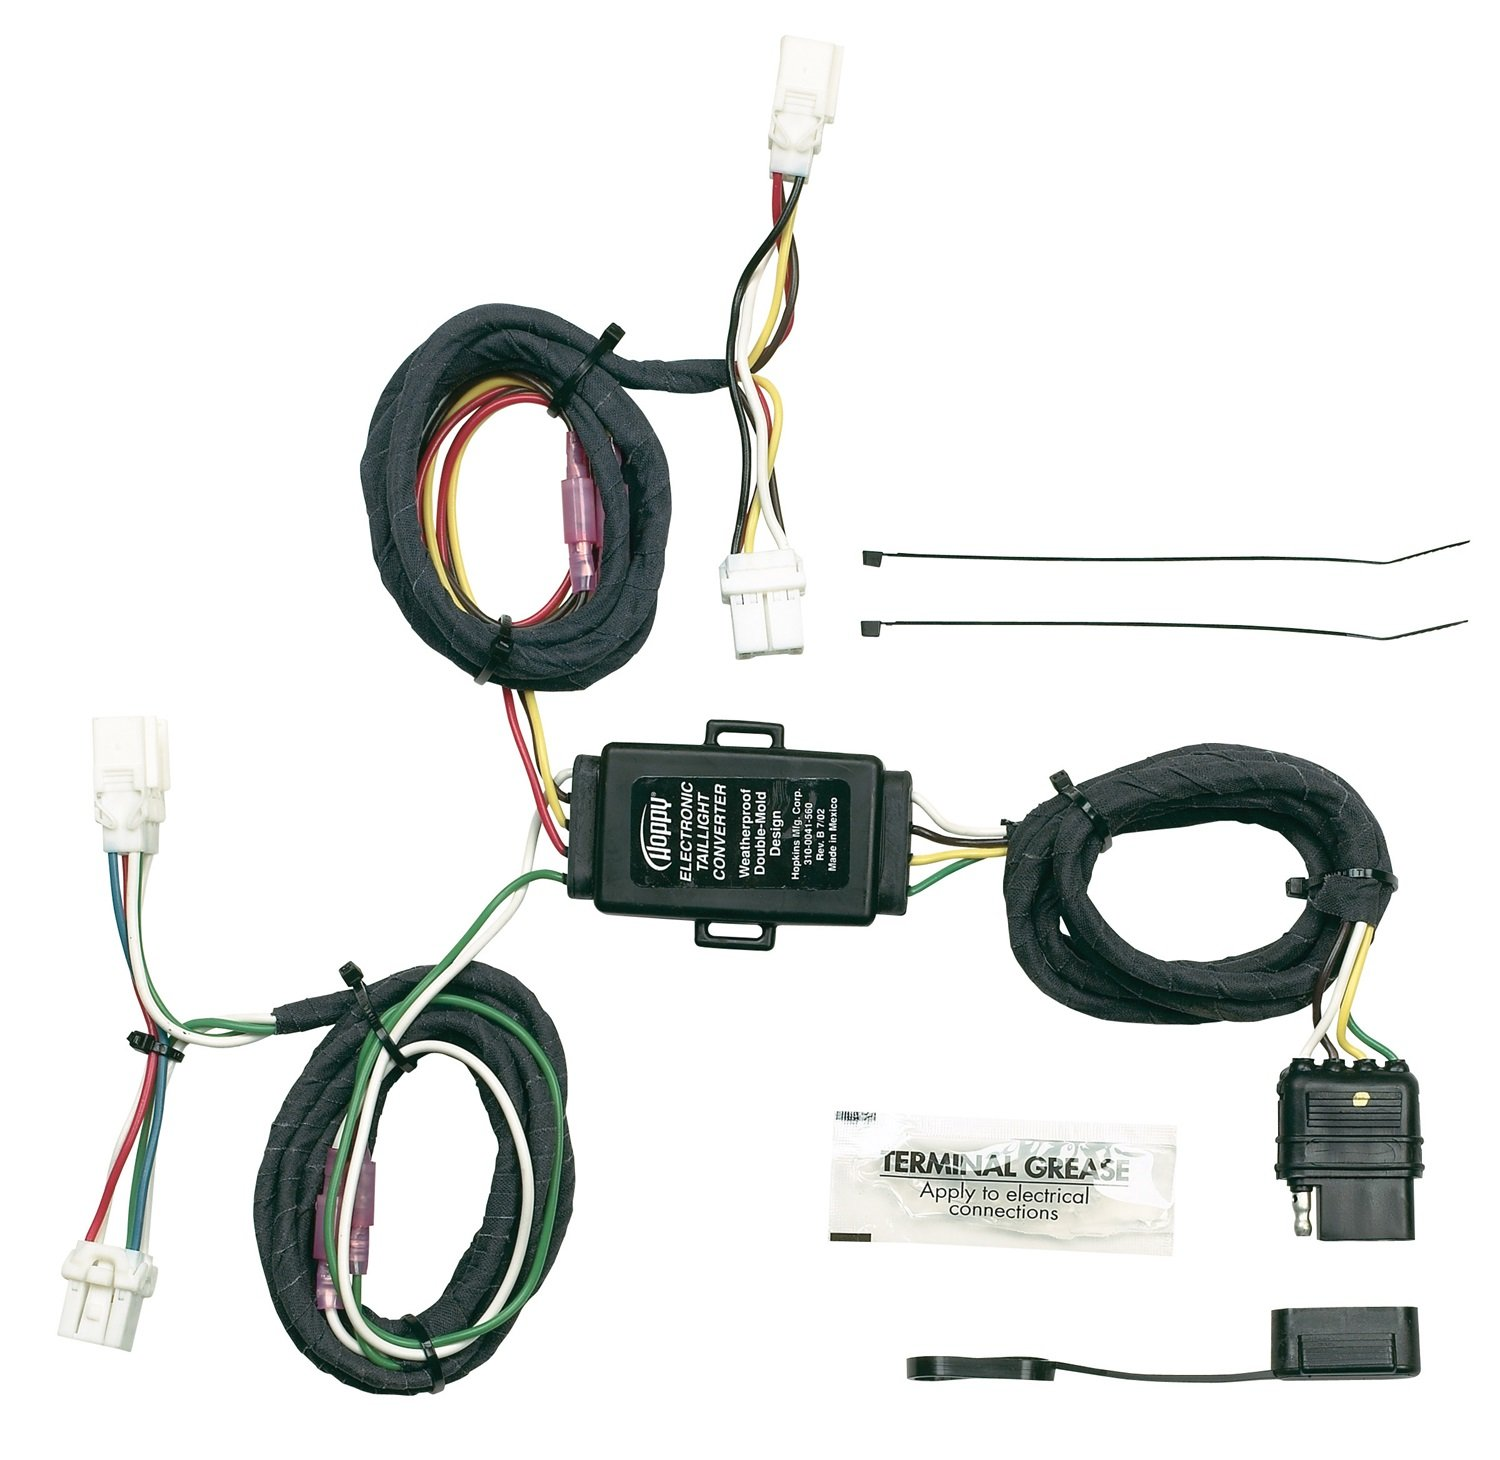 Amazon.com: Hopkins 43565 Plug-In Simple Vehicle Wiring Kit ... on push button starter installation diagram, trailer tires diagram, trailer brakes, trailer lights, trailer frame diagram, trailer battery diagram, trailer schematic, trailer hitches diagram, circuit diagram, truck cap locks diagram, cable harness diagram, trailer batteries diagram, trailer motor diagram, trailer parts, trailer connector diagram,